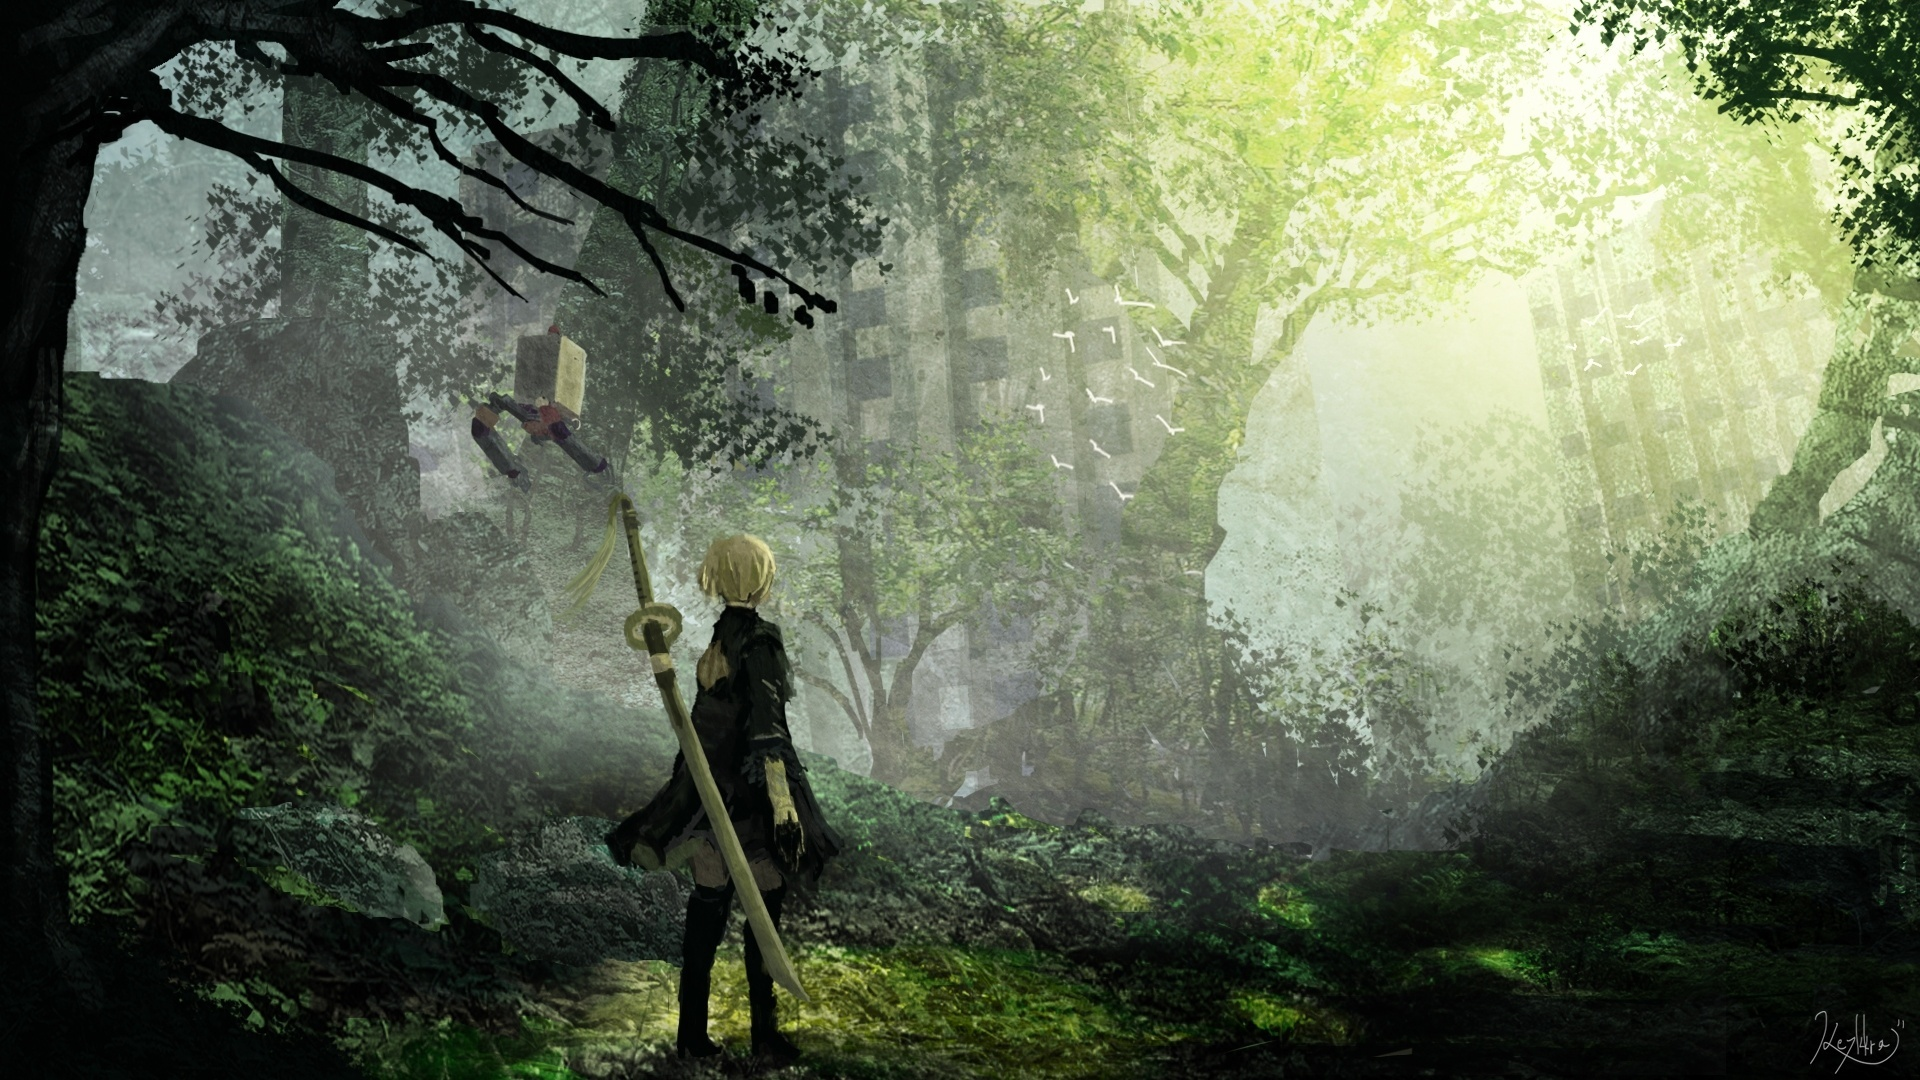 Nier Automata Hd Wallpaper Posted By Sarah Simpson